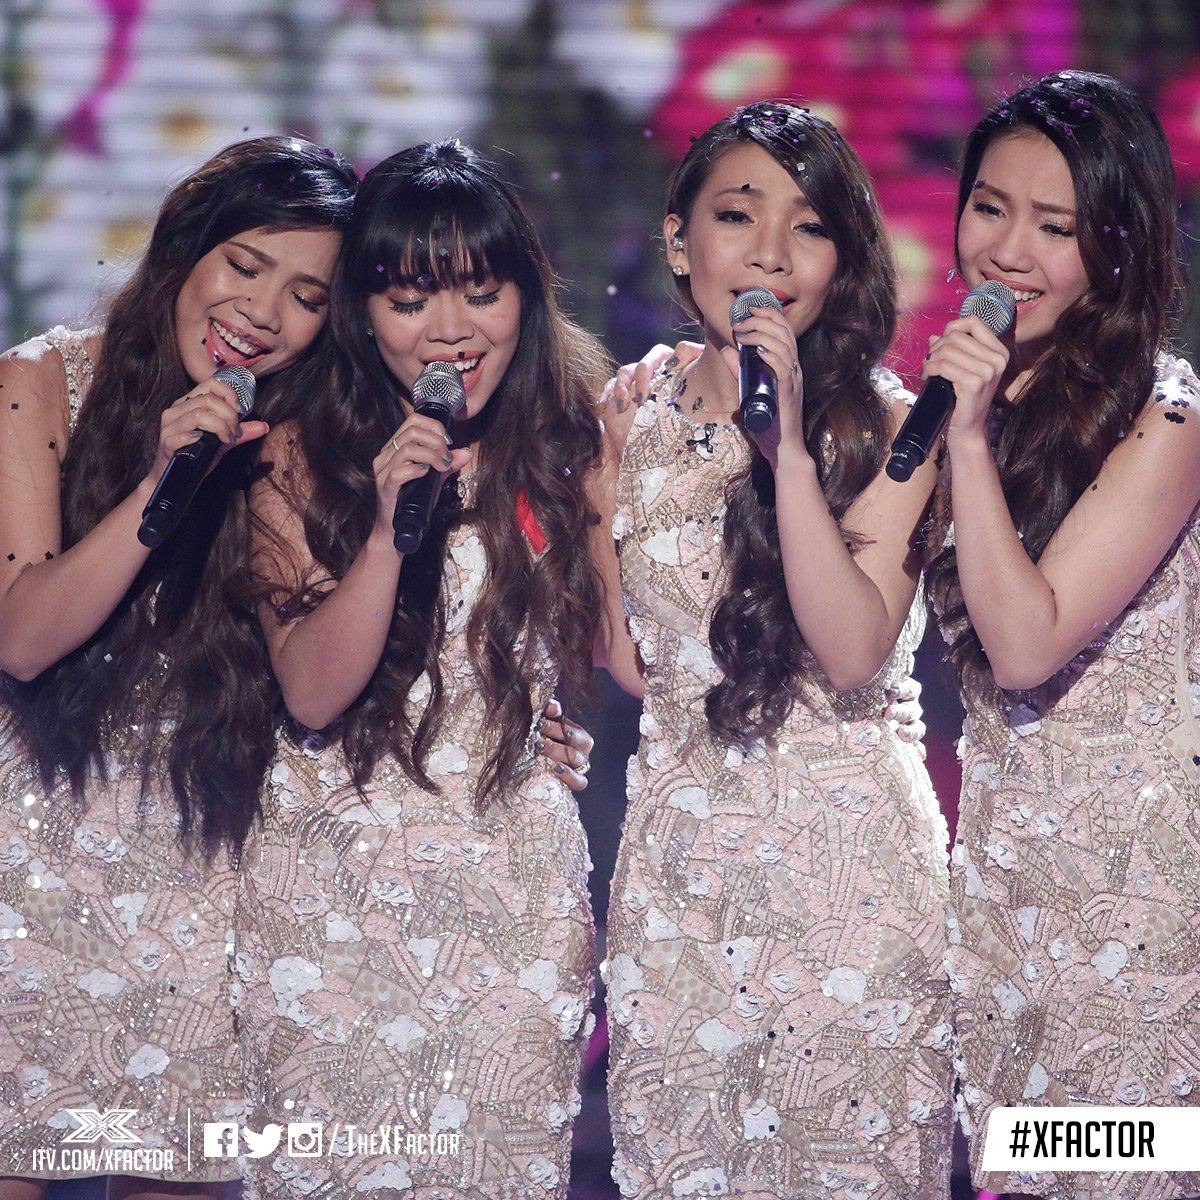 Facing the sing-off... @4thImpactMusic and @LaurenMurray 😱 #XFactor https://t.co/YGIE9pAbHL